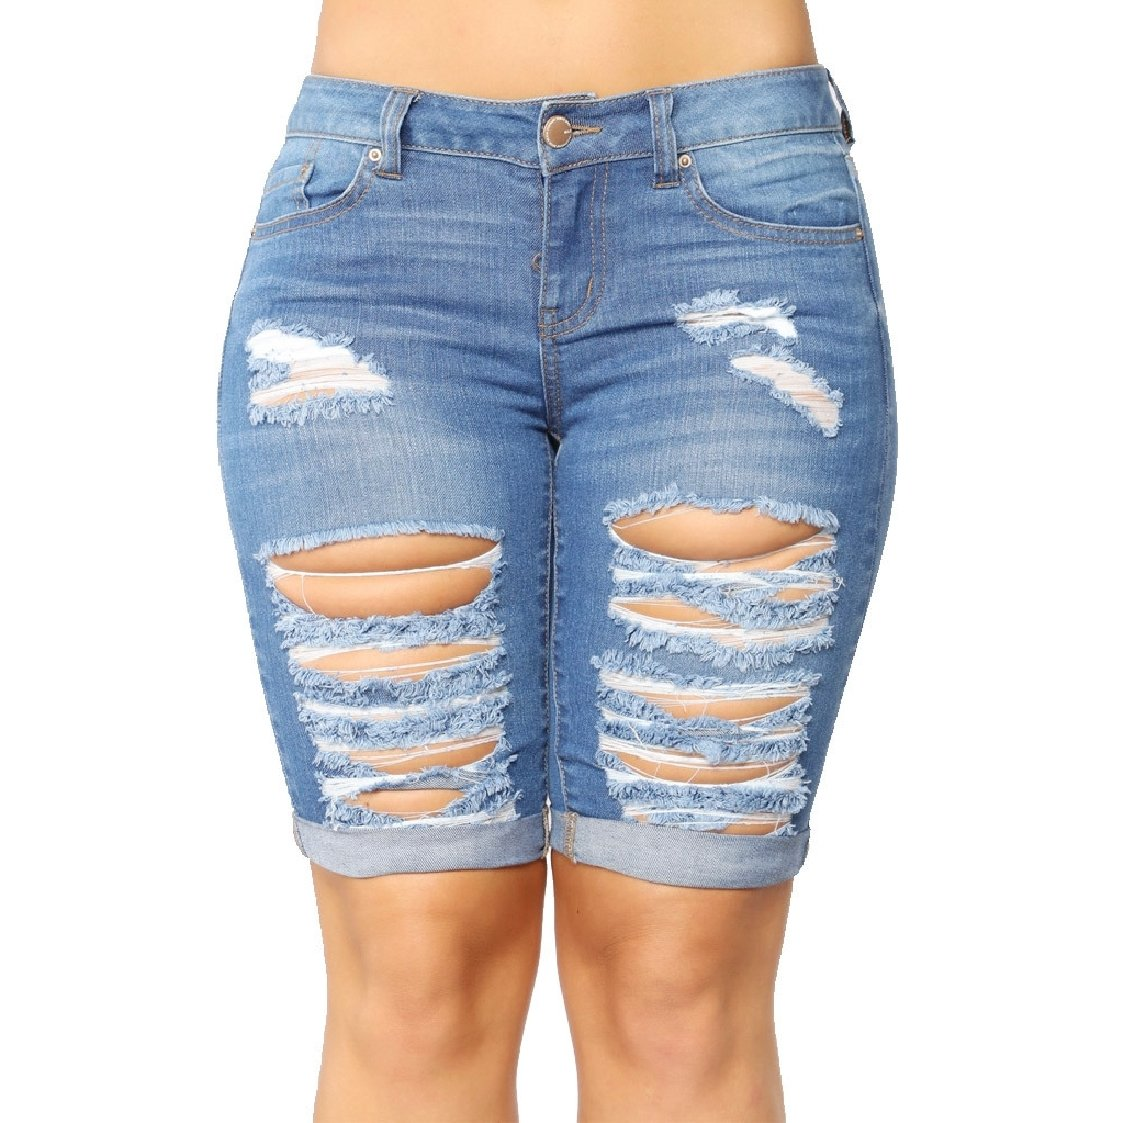 Middle Waist Denim Holes Shorts Coolred-Women Fashion Slim Fit Pocket